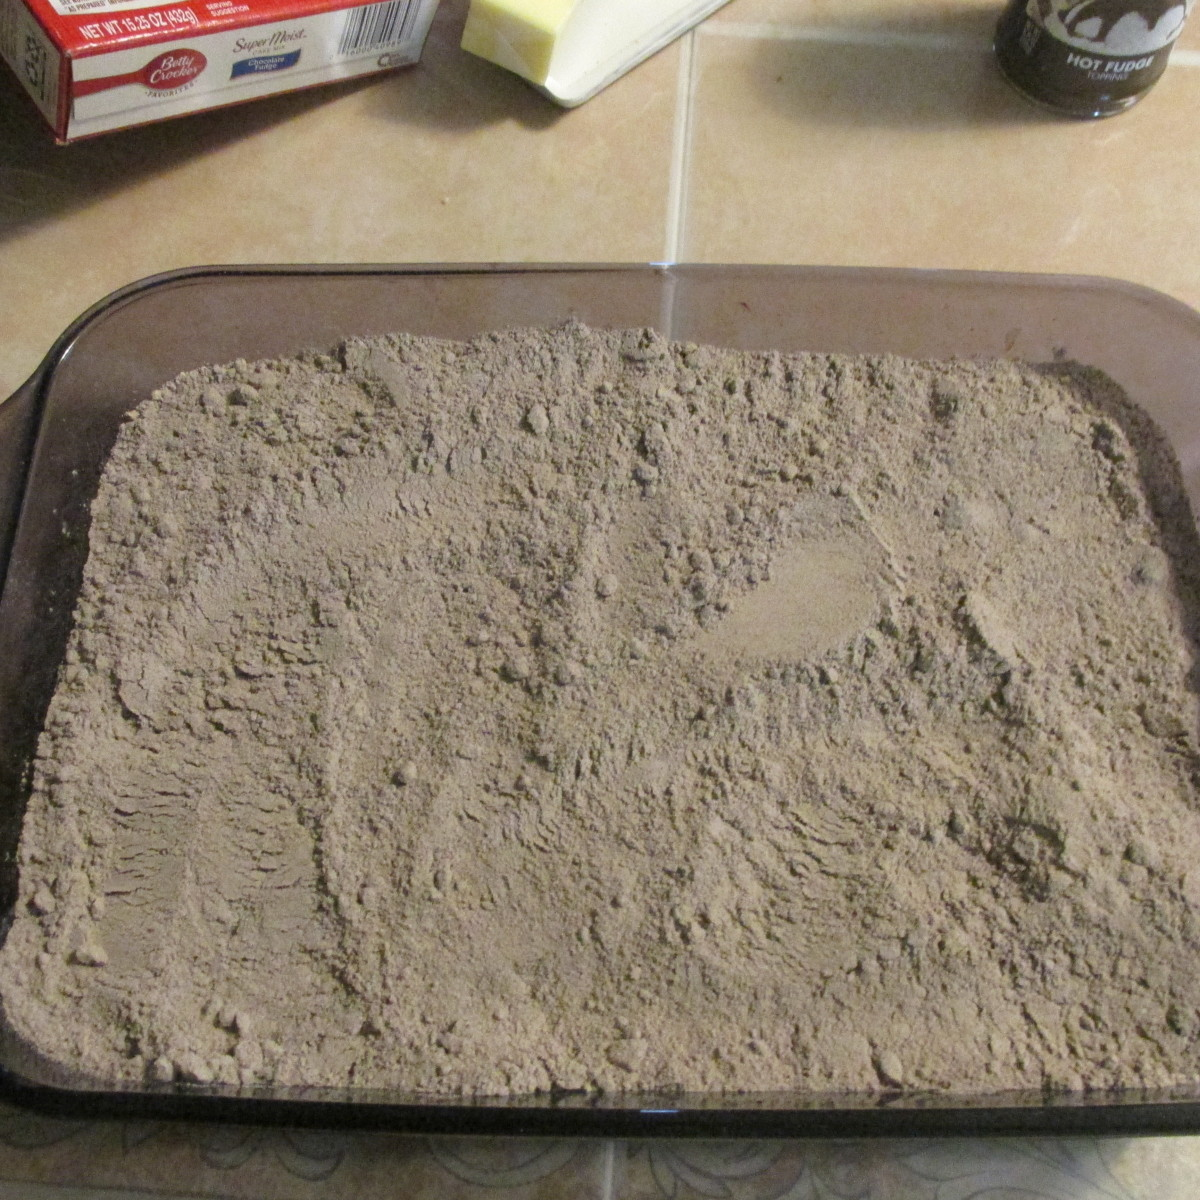 2nd layer, the cake mix